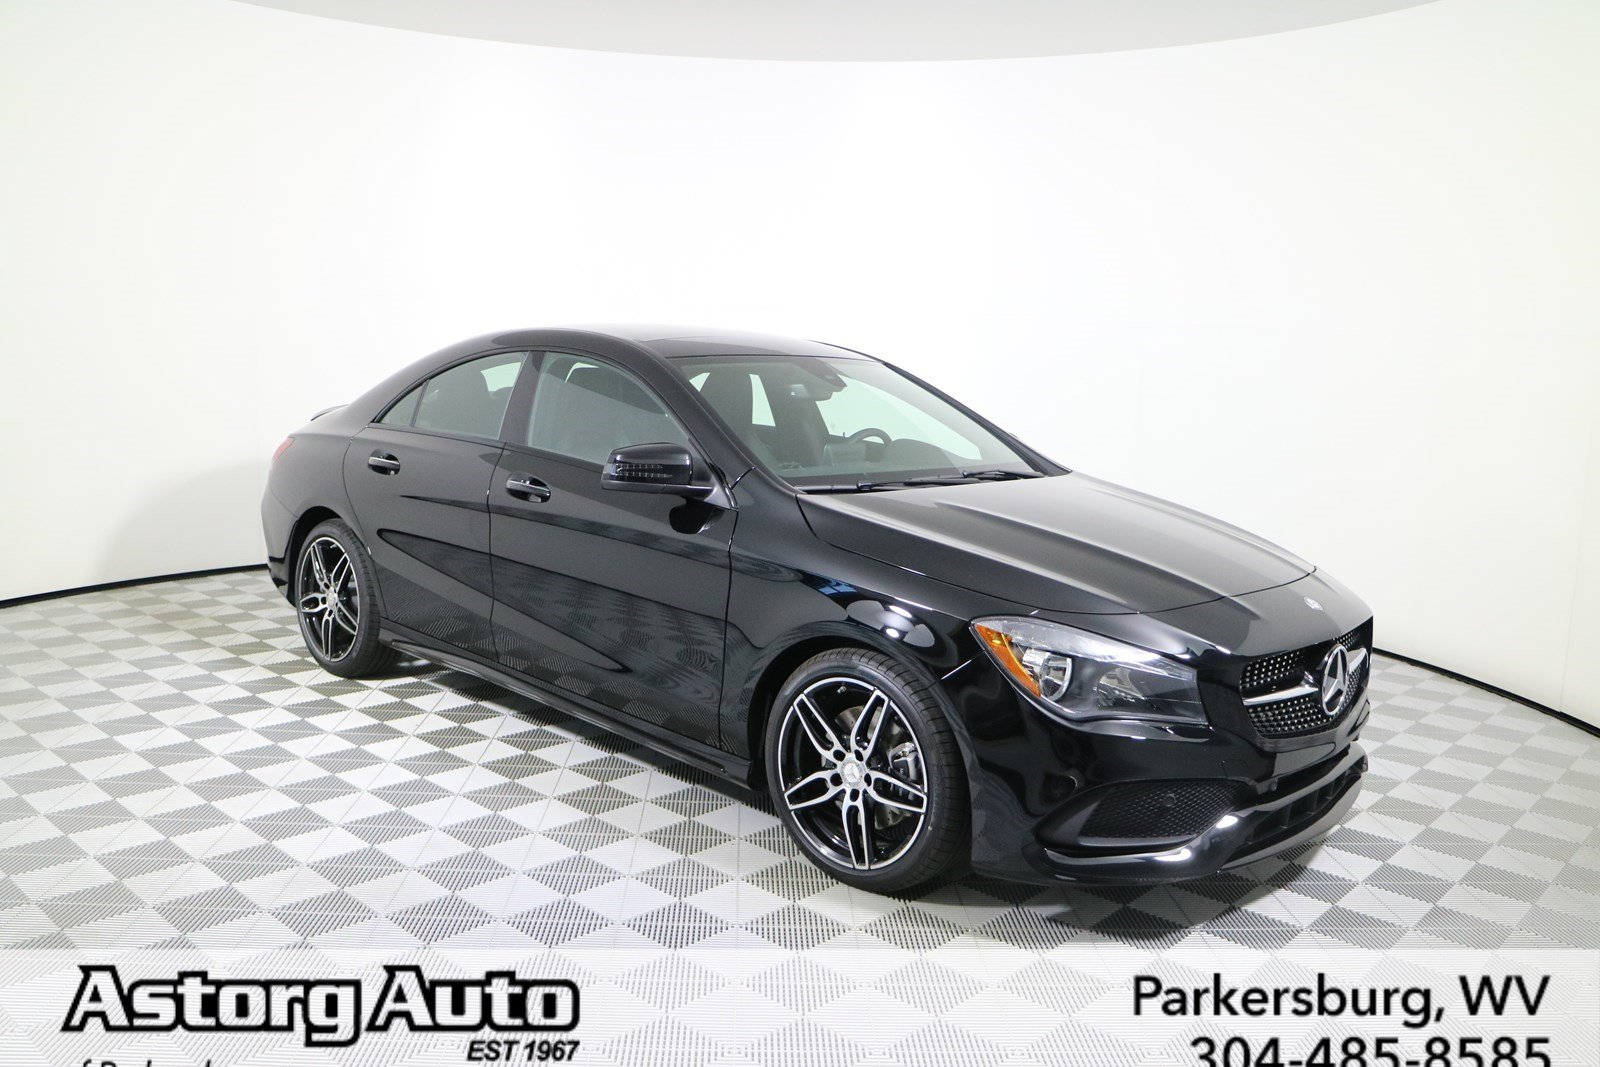 New 2018 mercedes benz cla cla 250 coupe in parkersburg for 2018 mercedes benz cla 250 coupe